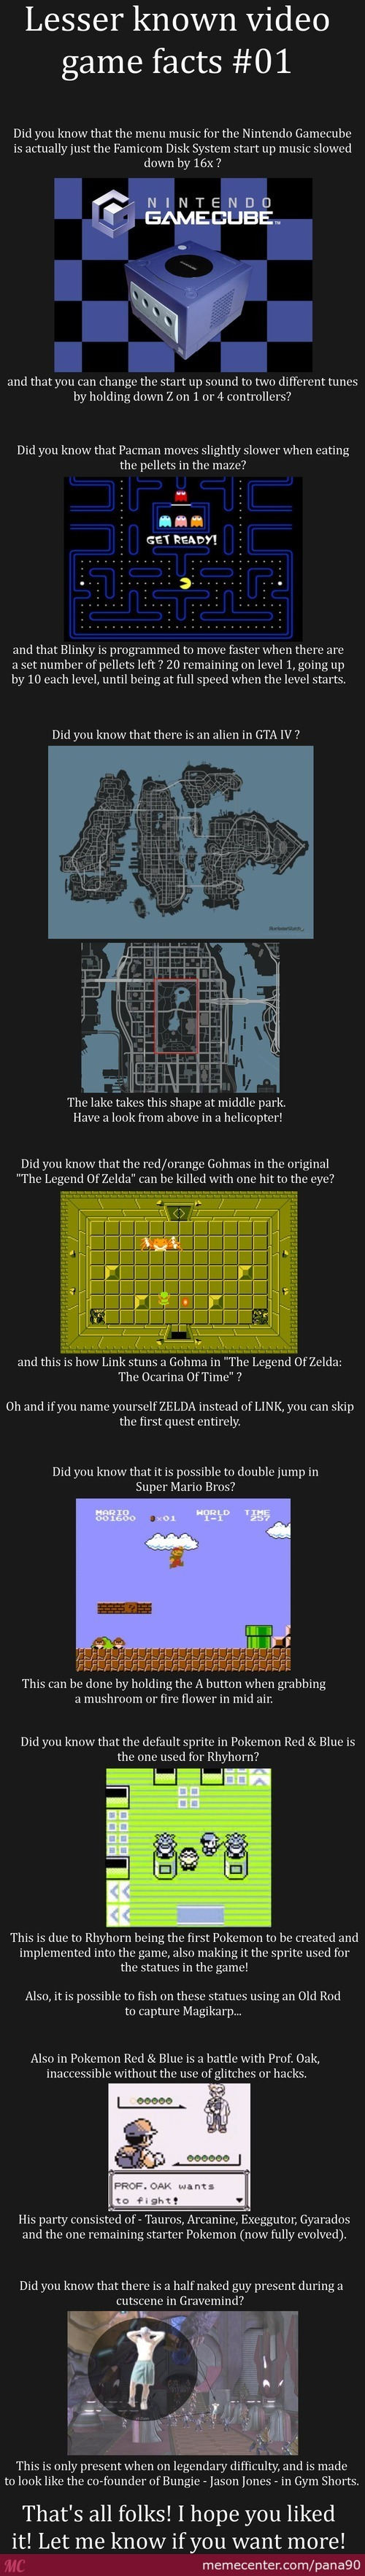 Lesser Known Video Game Facts (Not Mine)